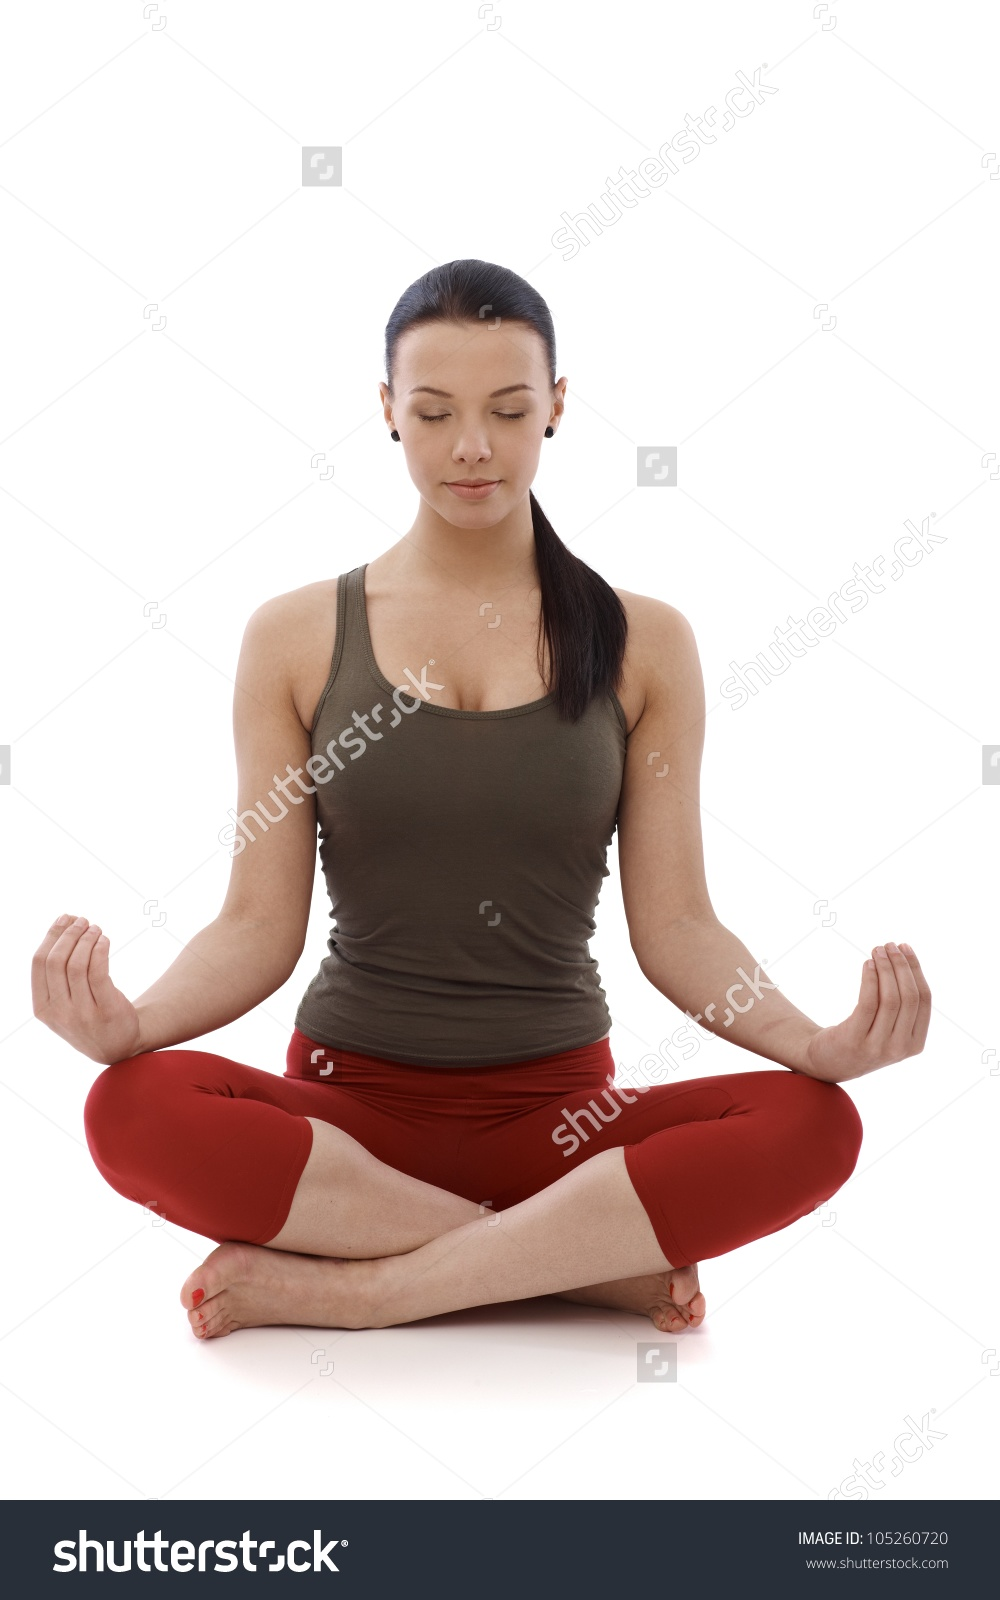 Young Girl Practicing Yoga, Sitting In Tailor Seat, Relaxing Eyes.